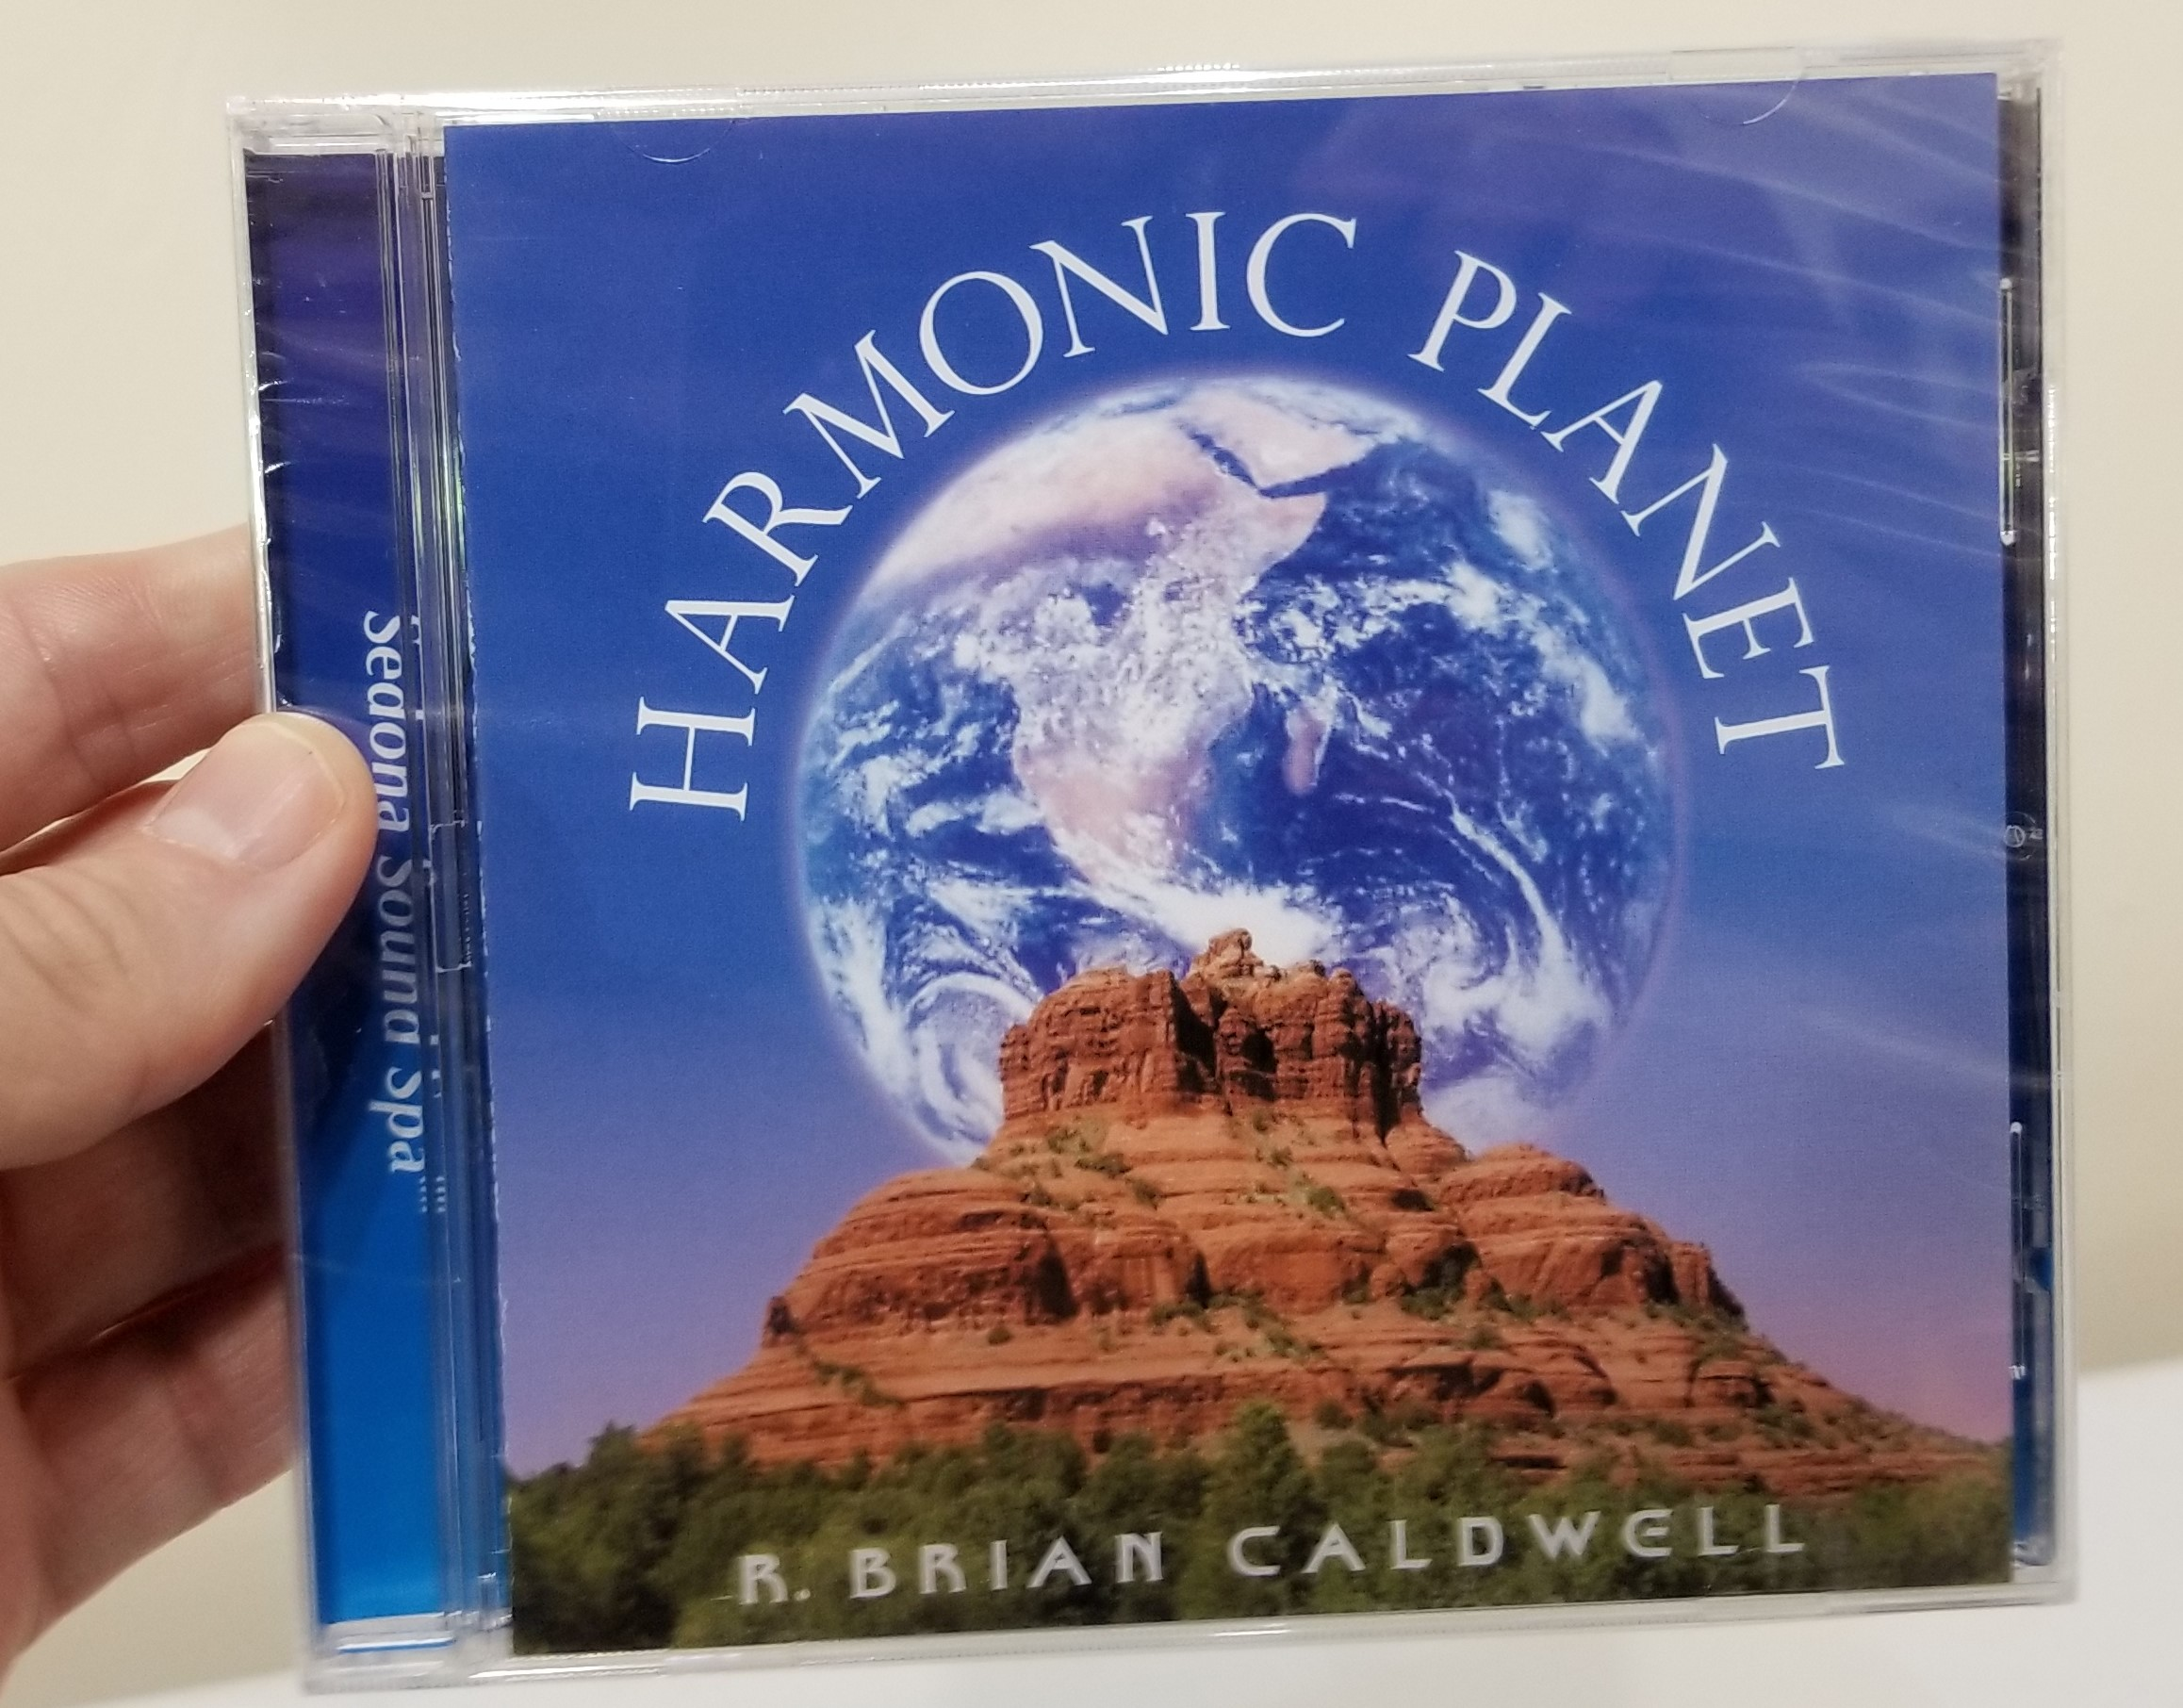 Harmonic Planet CD by Brian Caldwell